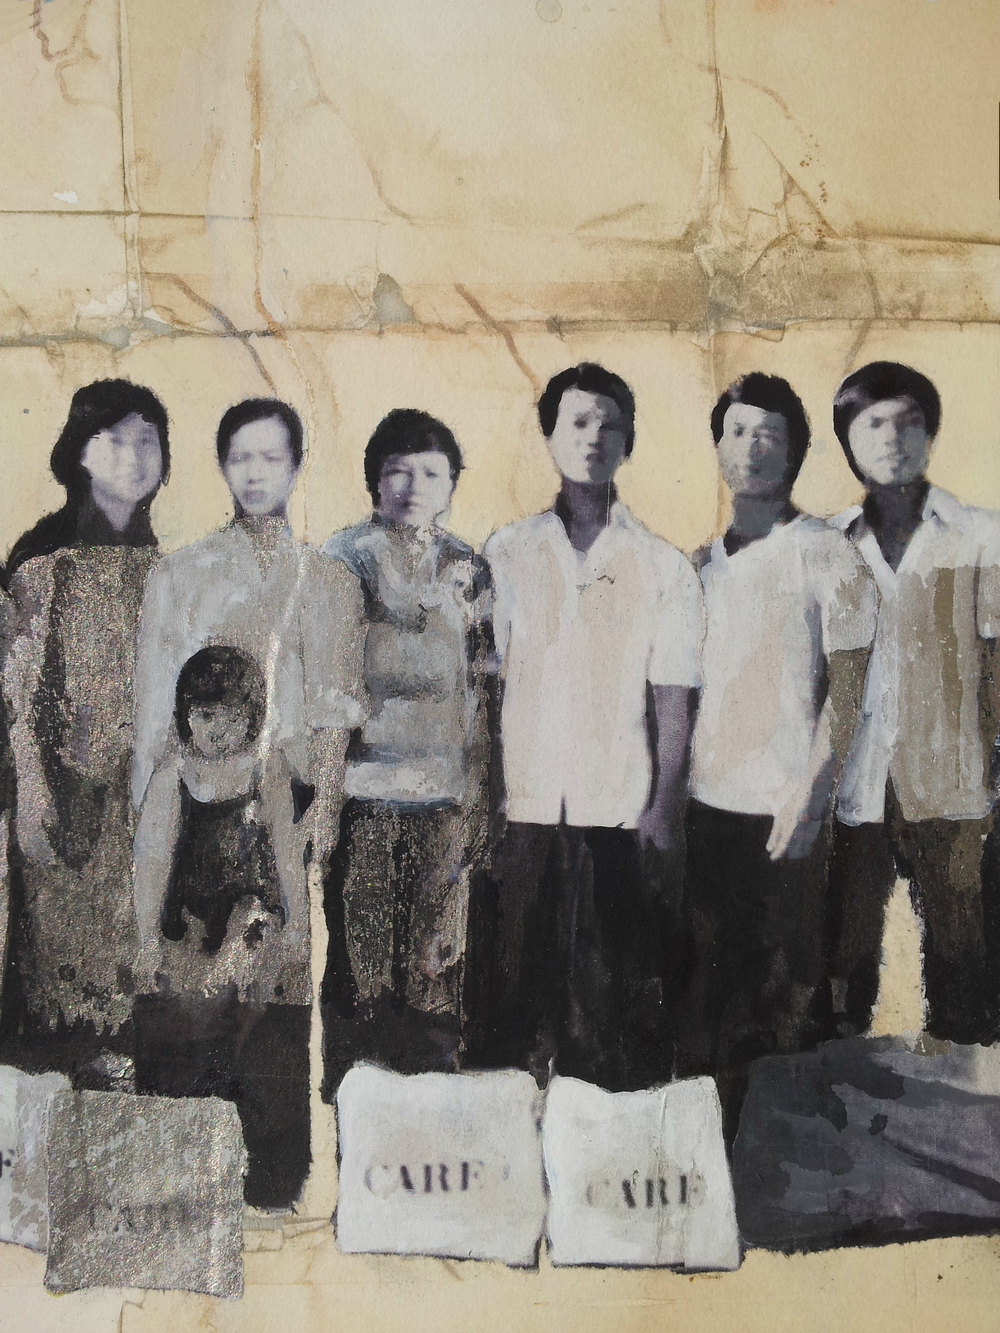 Tràn Vân Dũng (second from the right) and some of those who were on his boat